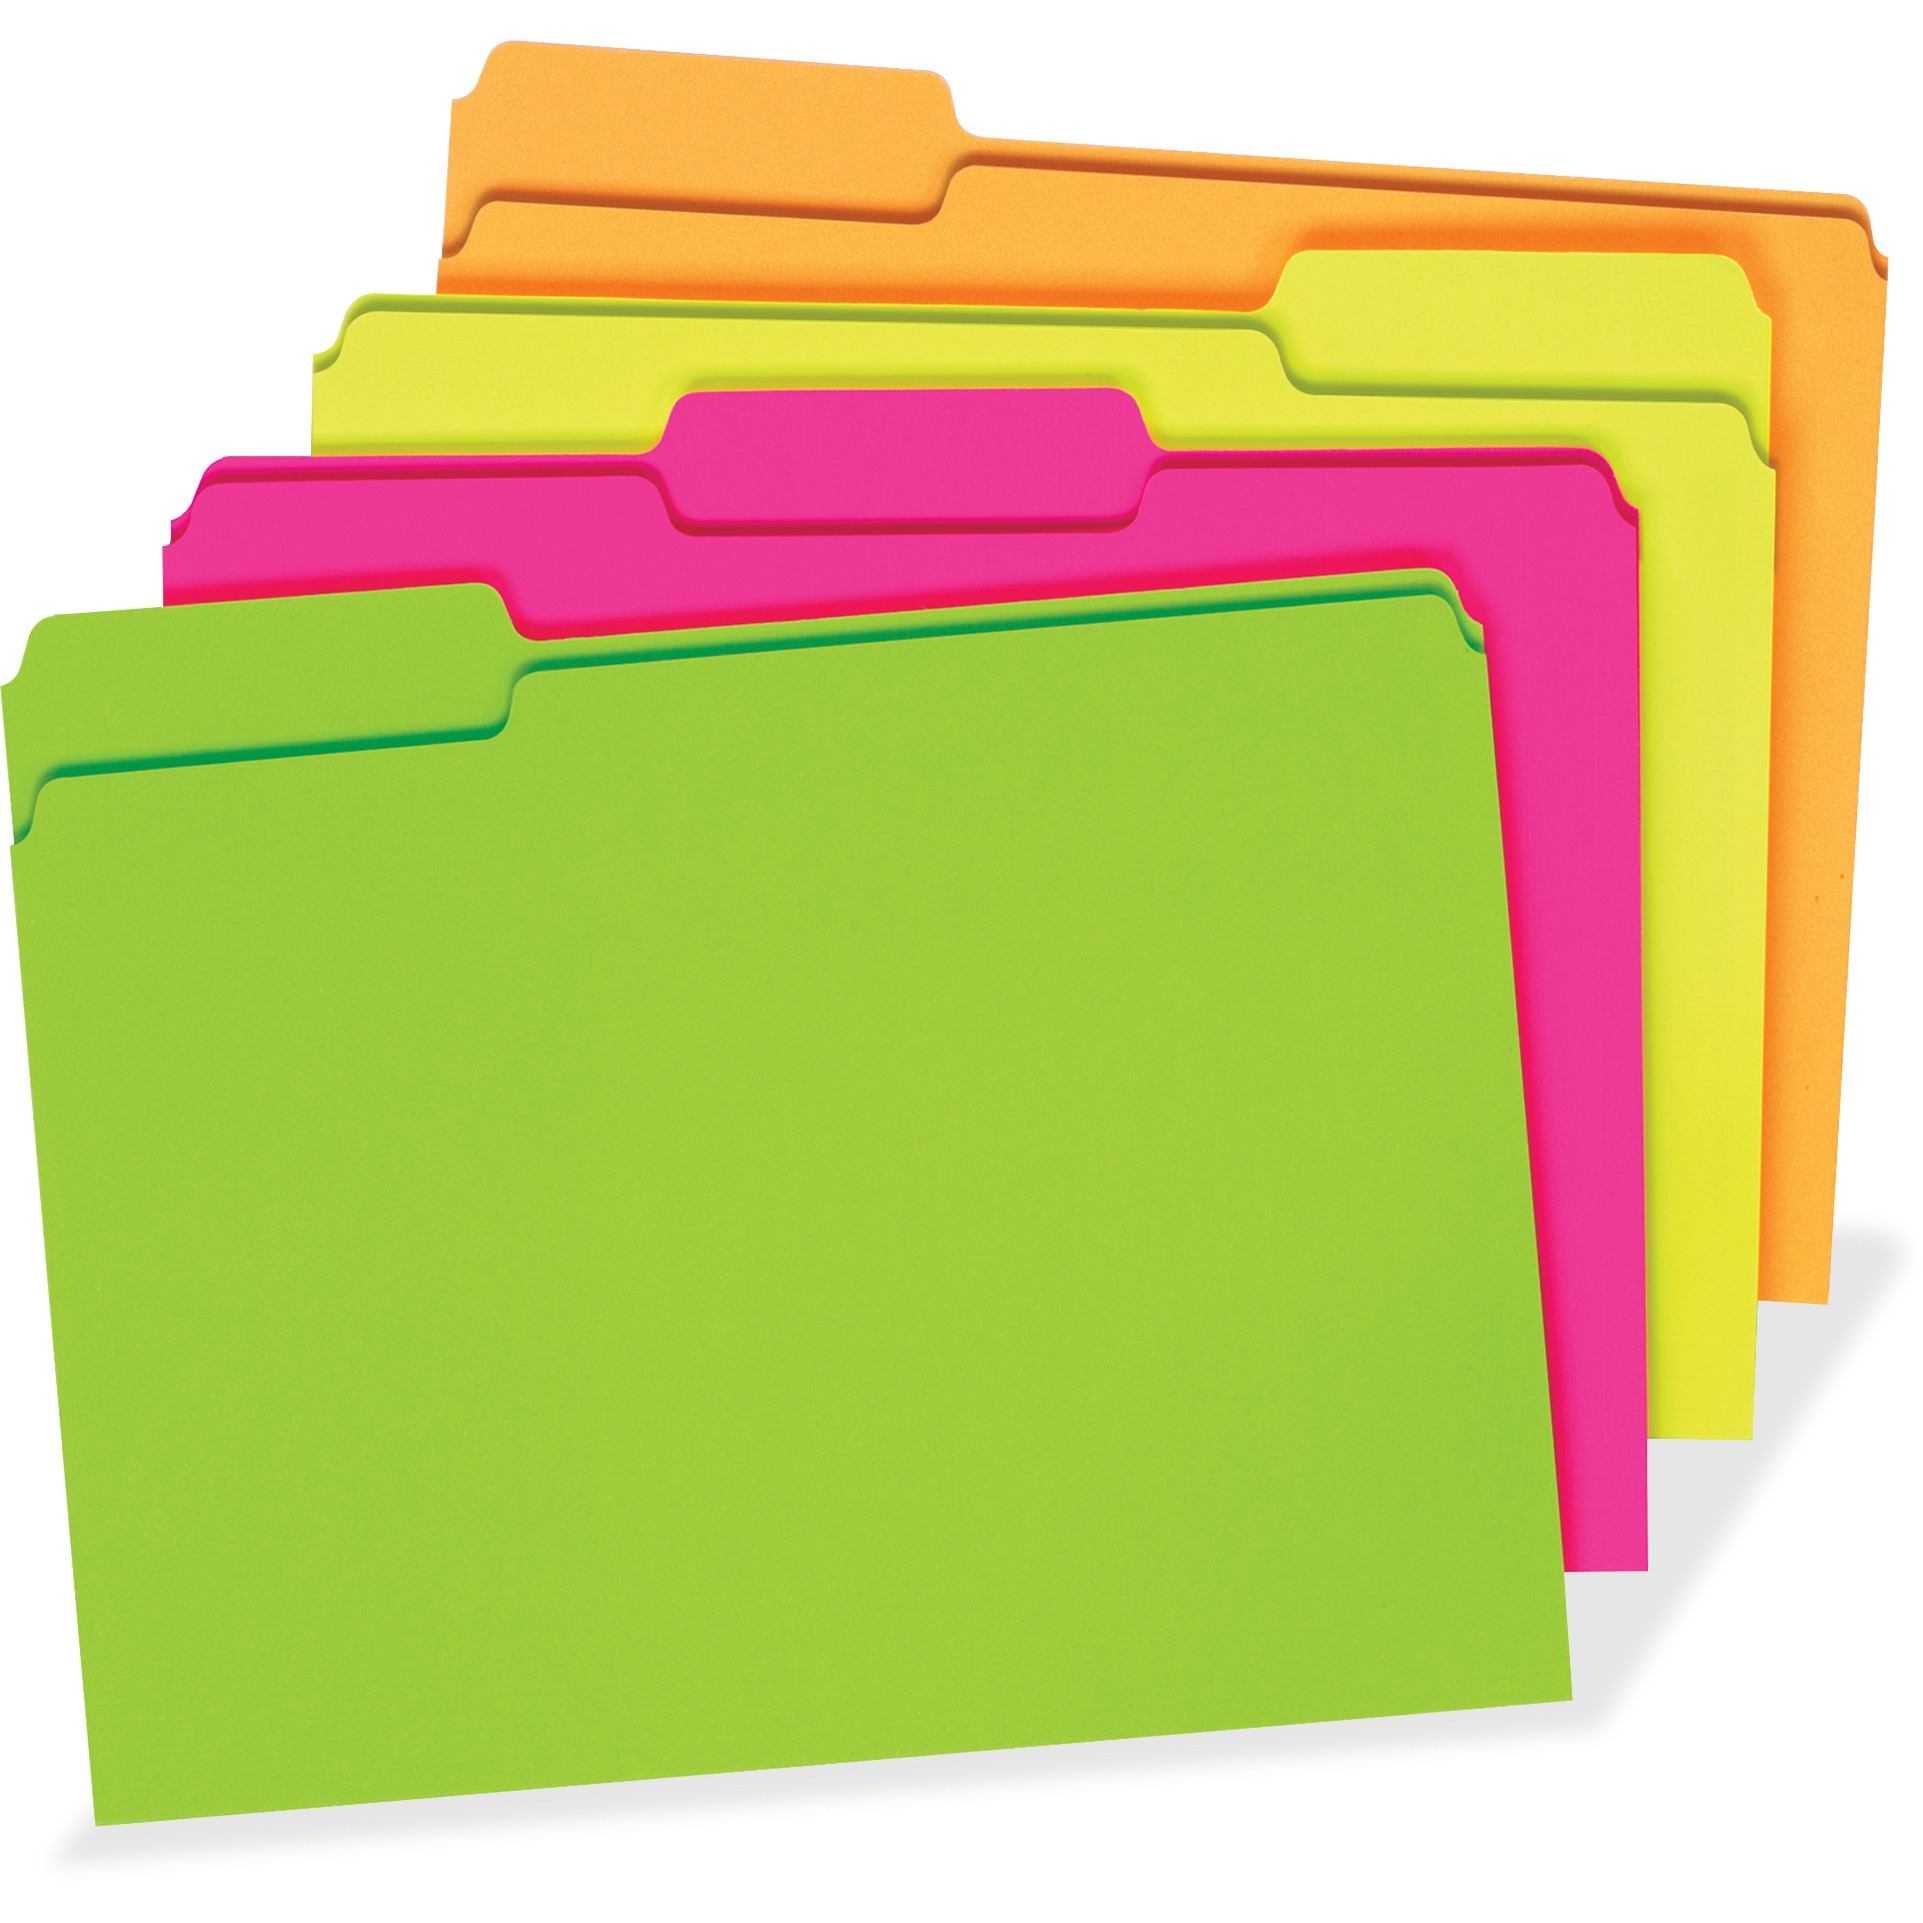 Pendaflex, PFX40523, Glow File Folder, 24 / Pack, Fluorescent Pink,Fluorescent Orange,Fluorescent Green,Fluorescent Yellow